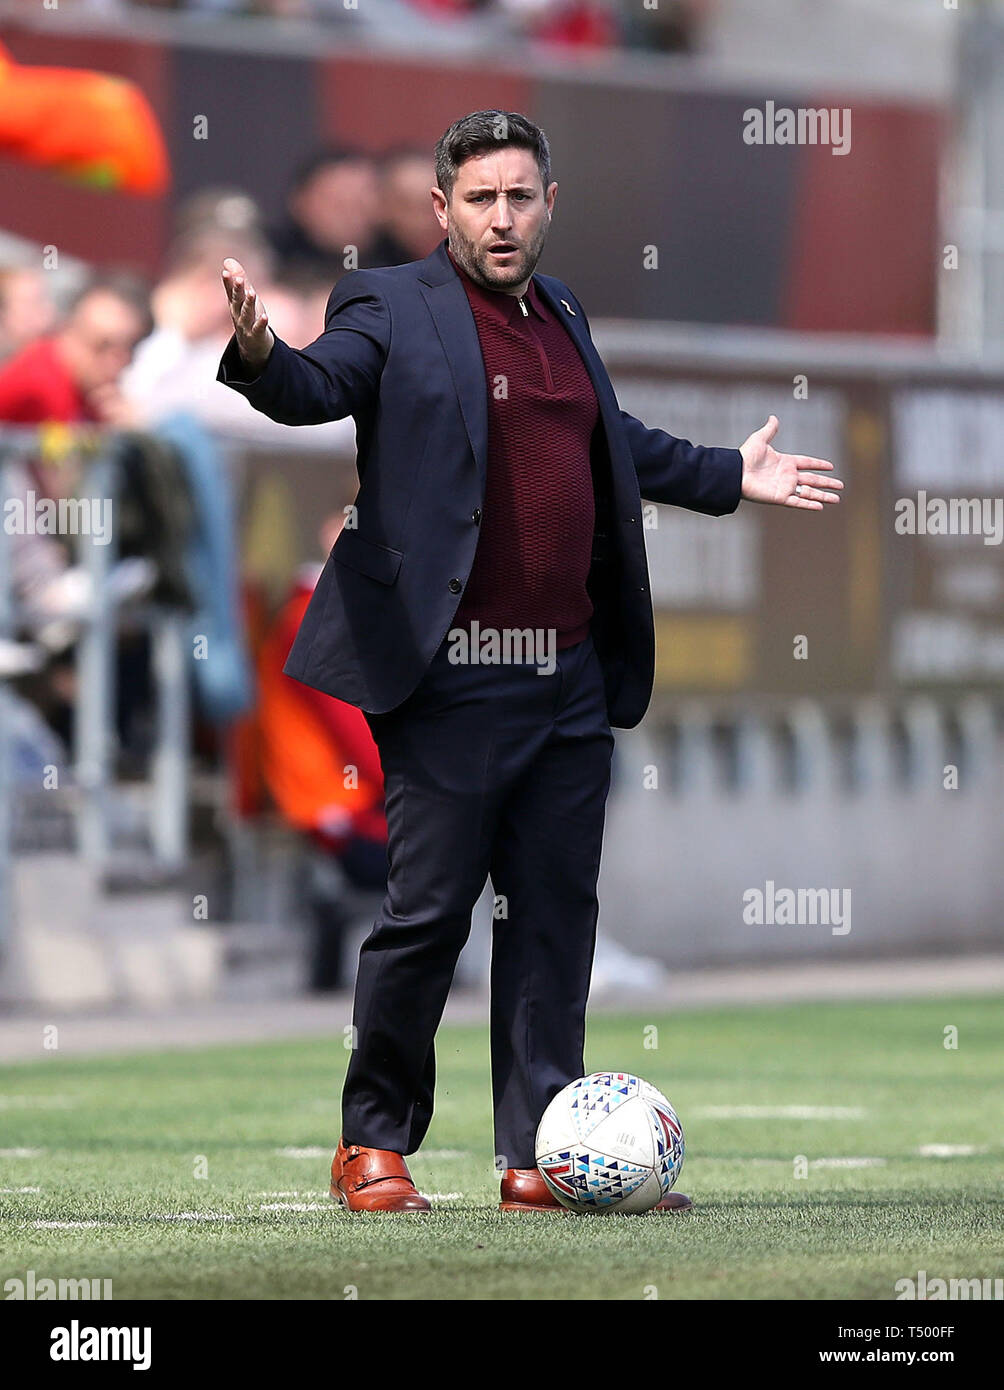 Bristol City manager Lee Johnson gestures on the touchline during the Sky Bet Championship match at Ashton Gate Stadium, Bristol. Stock Photo